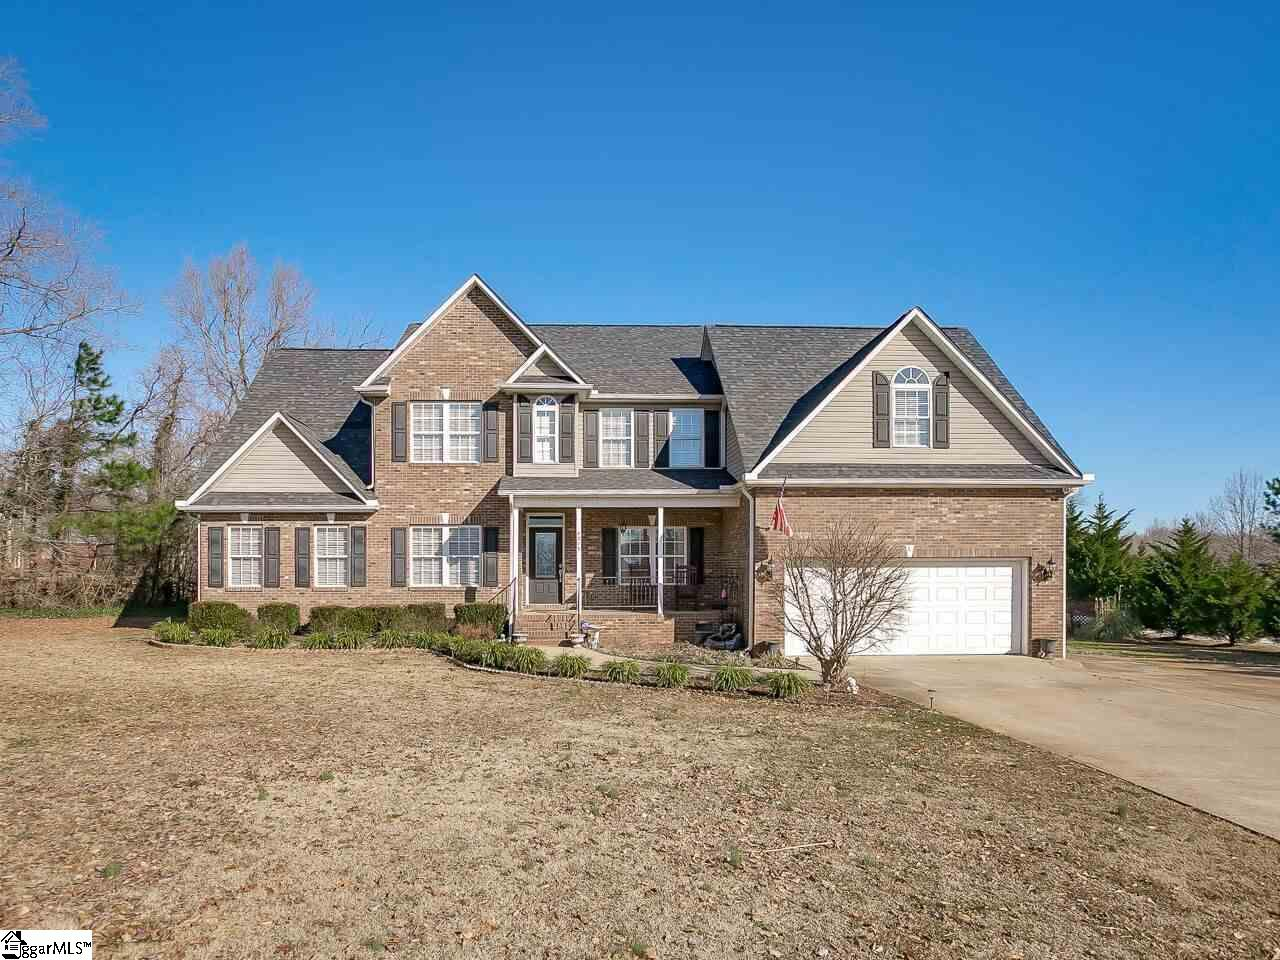 4275 Old Furnace Chesnee, SC 29323